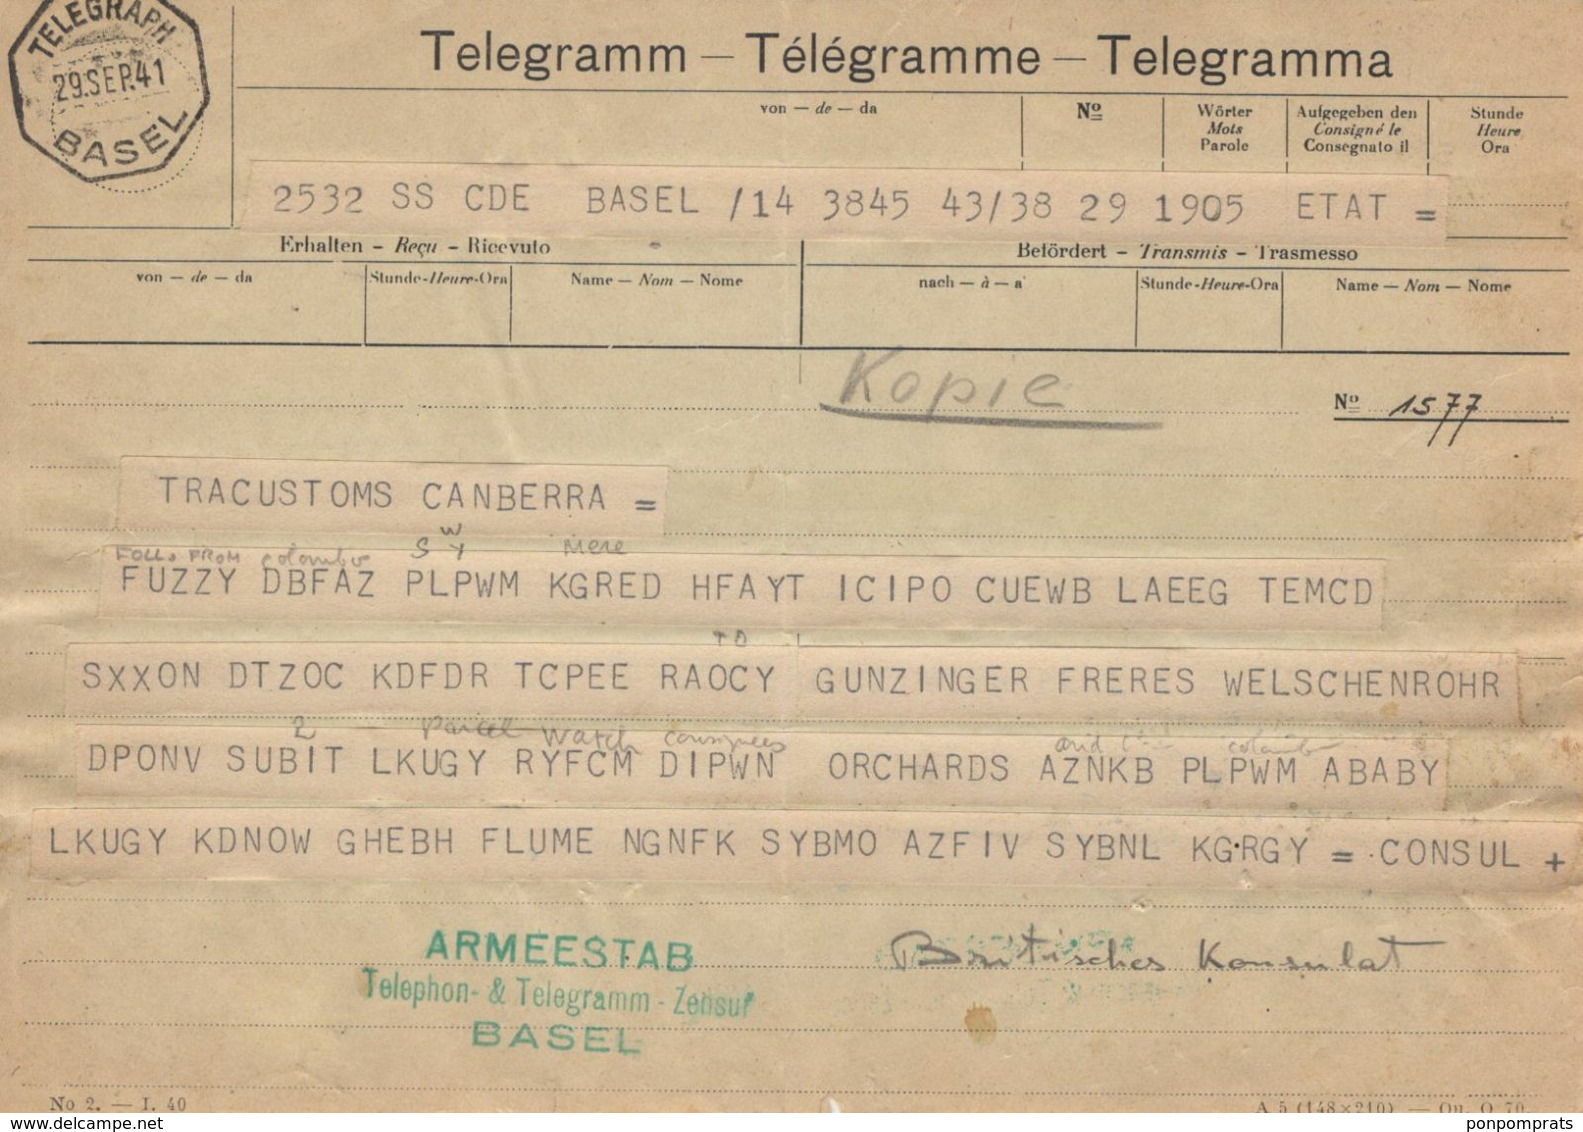 Second World War: Code Telegram From The British Legation In Bern For TRANSCUSTOM CANBERRA 1941 - Historical Documents